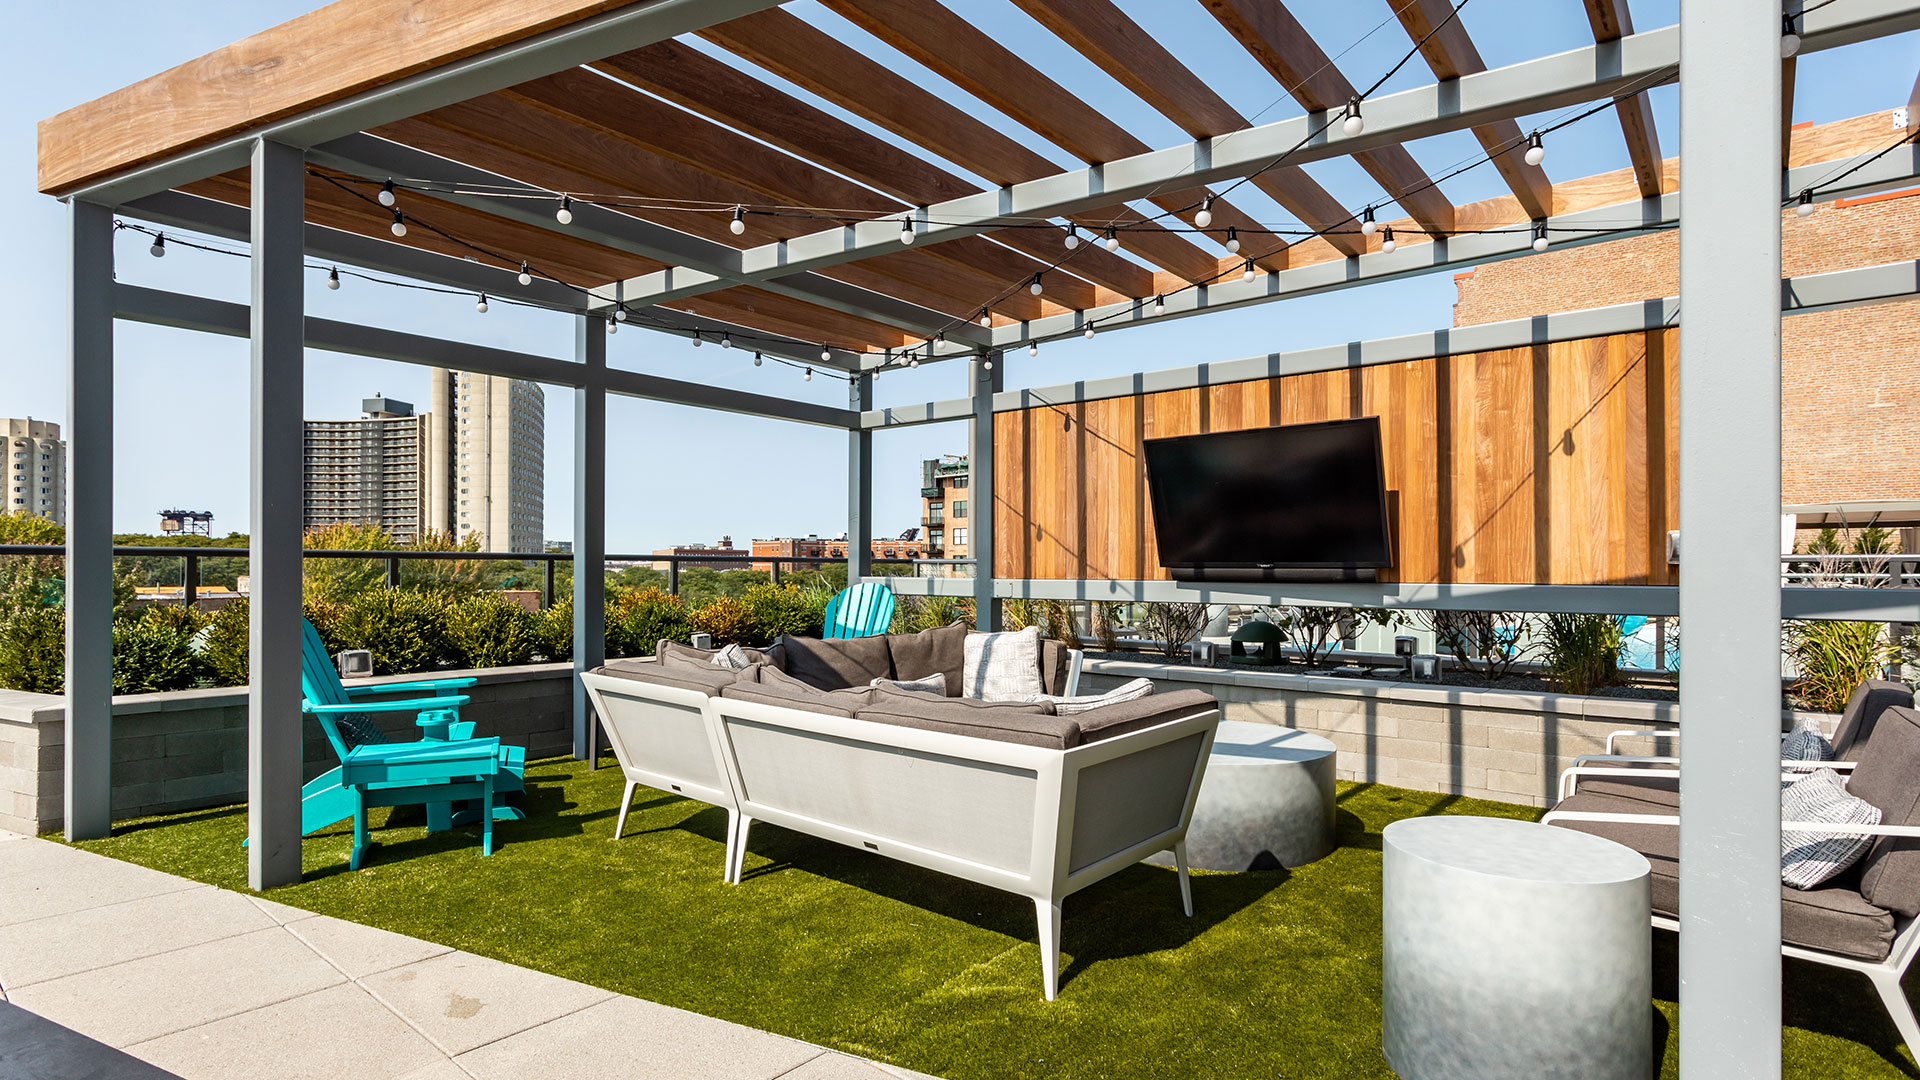 A pergola sits over an outdoor furniture set and flat screen television.